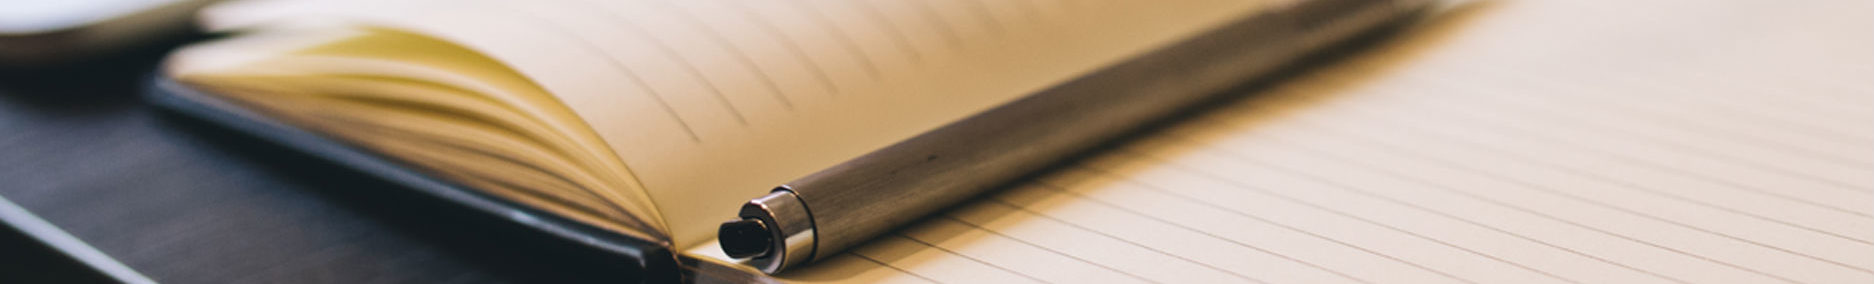 Image of a Pen/Book